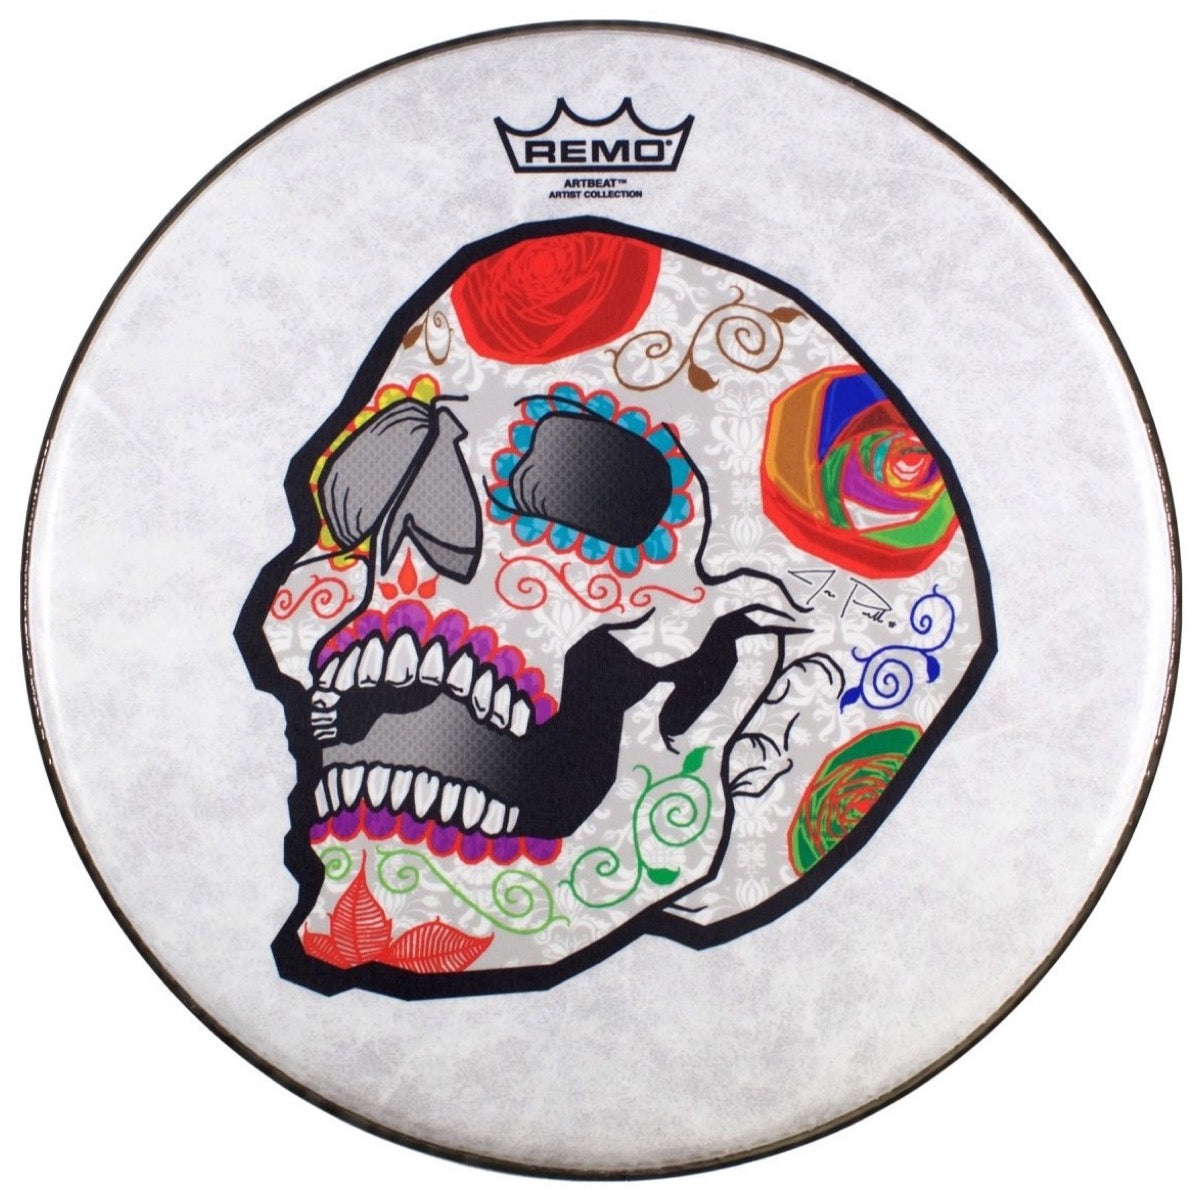 Remo Artbeat Artist Collection Jose Pasillas Drumhead